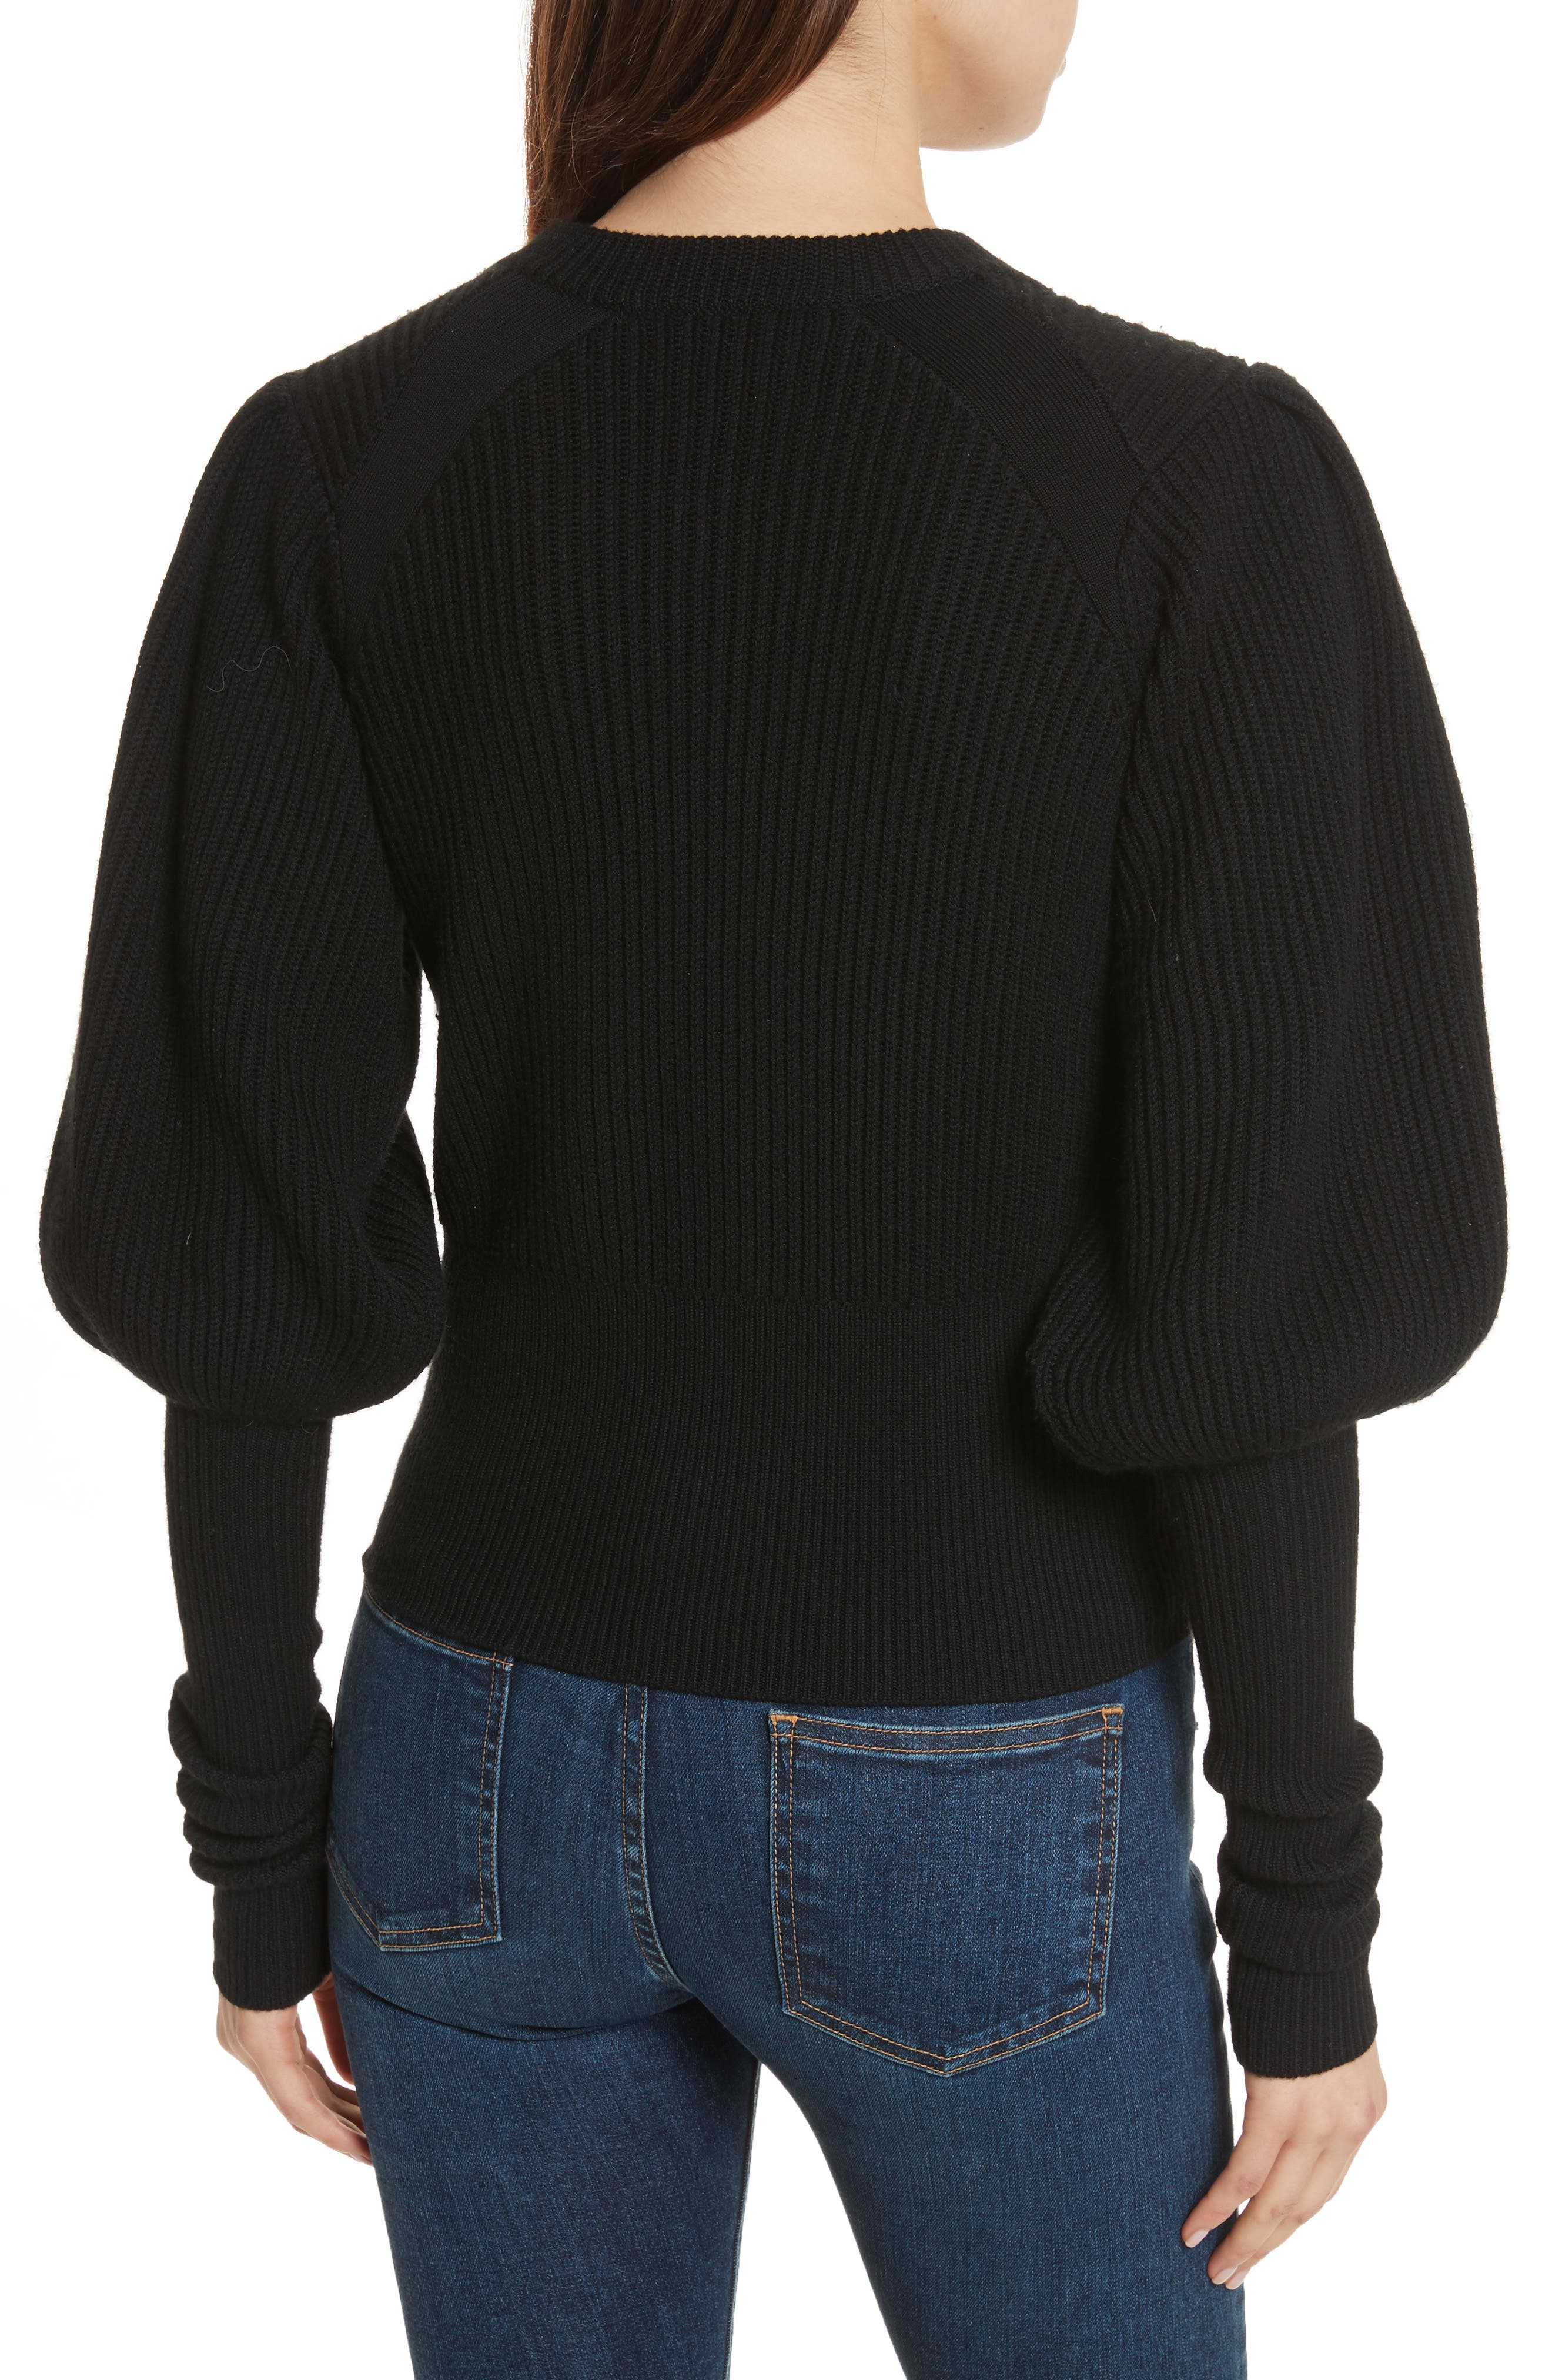 Jude Leg of Mutton Sleeve Sweater,                             Alternate thumbnail 2, color,                             001